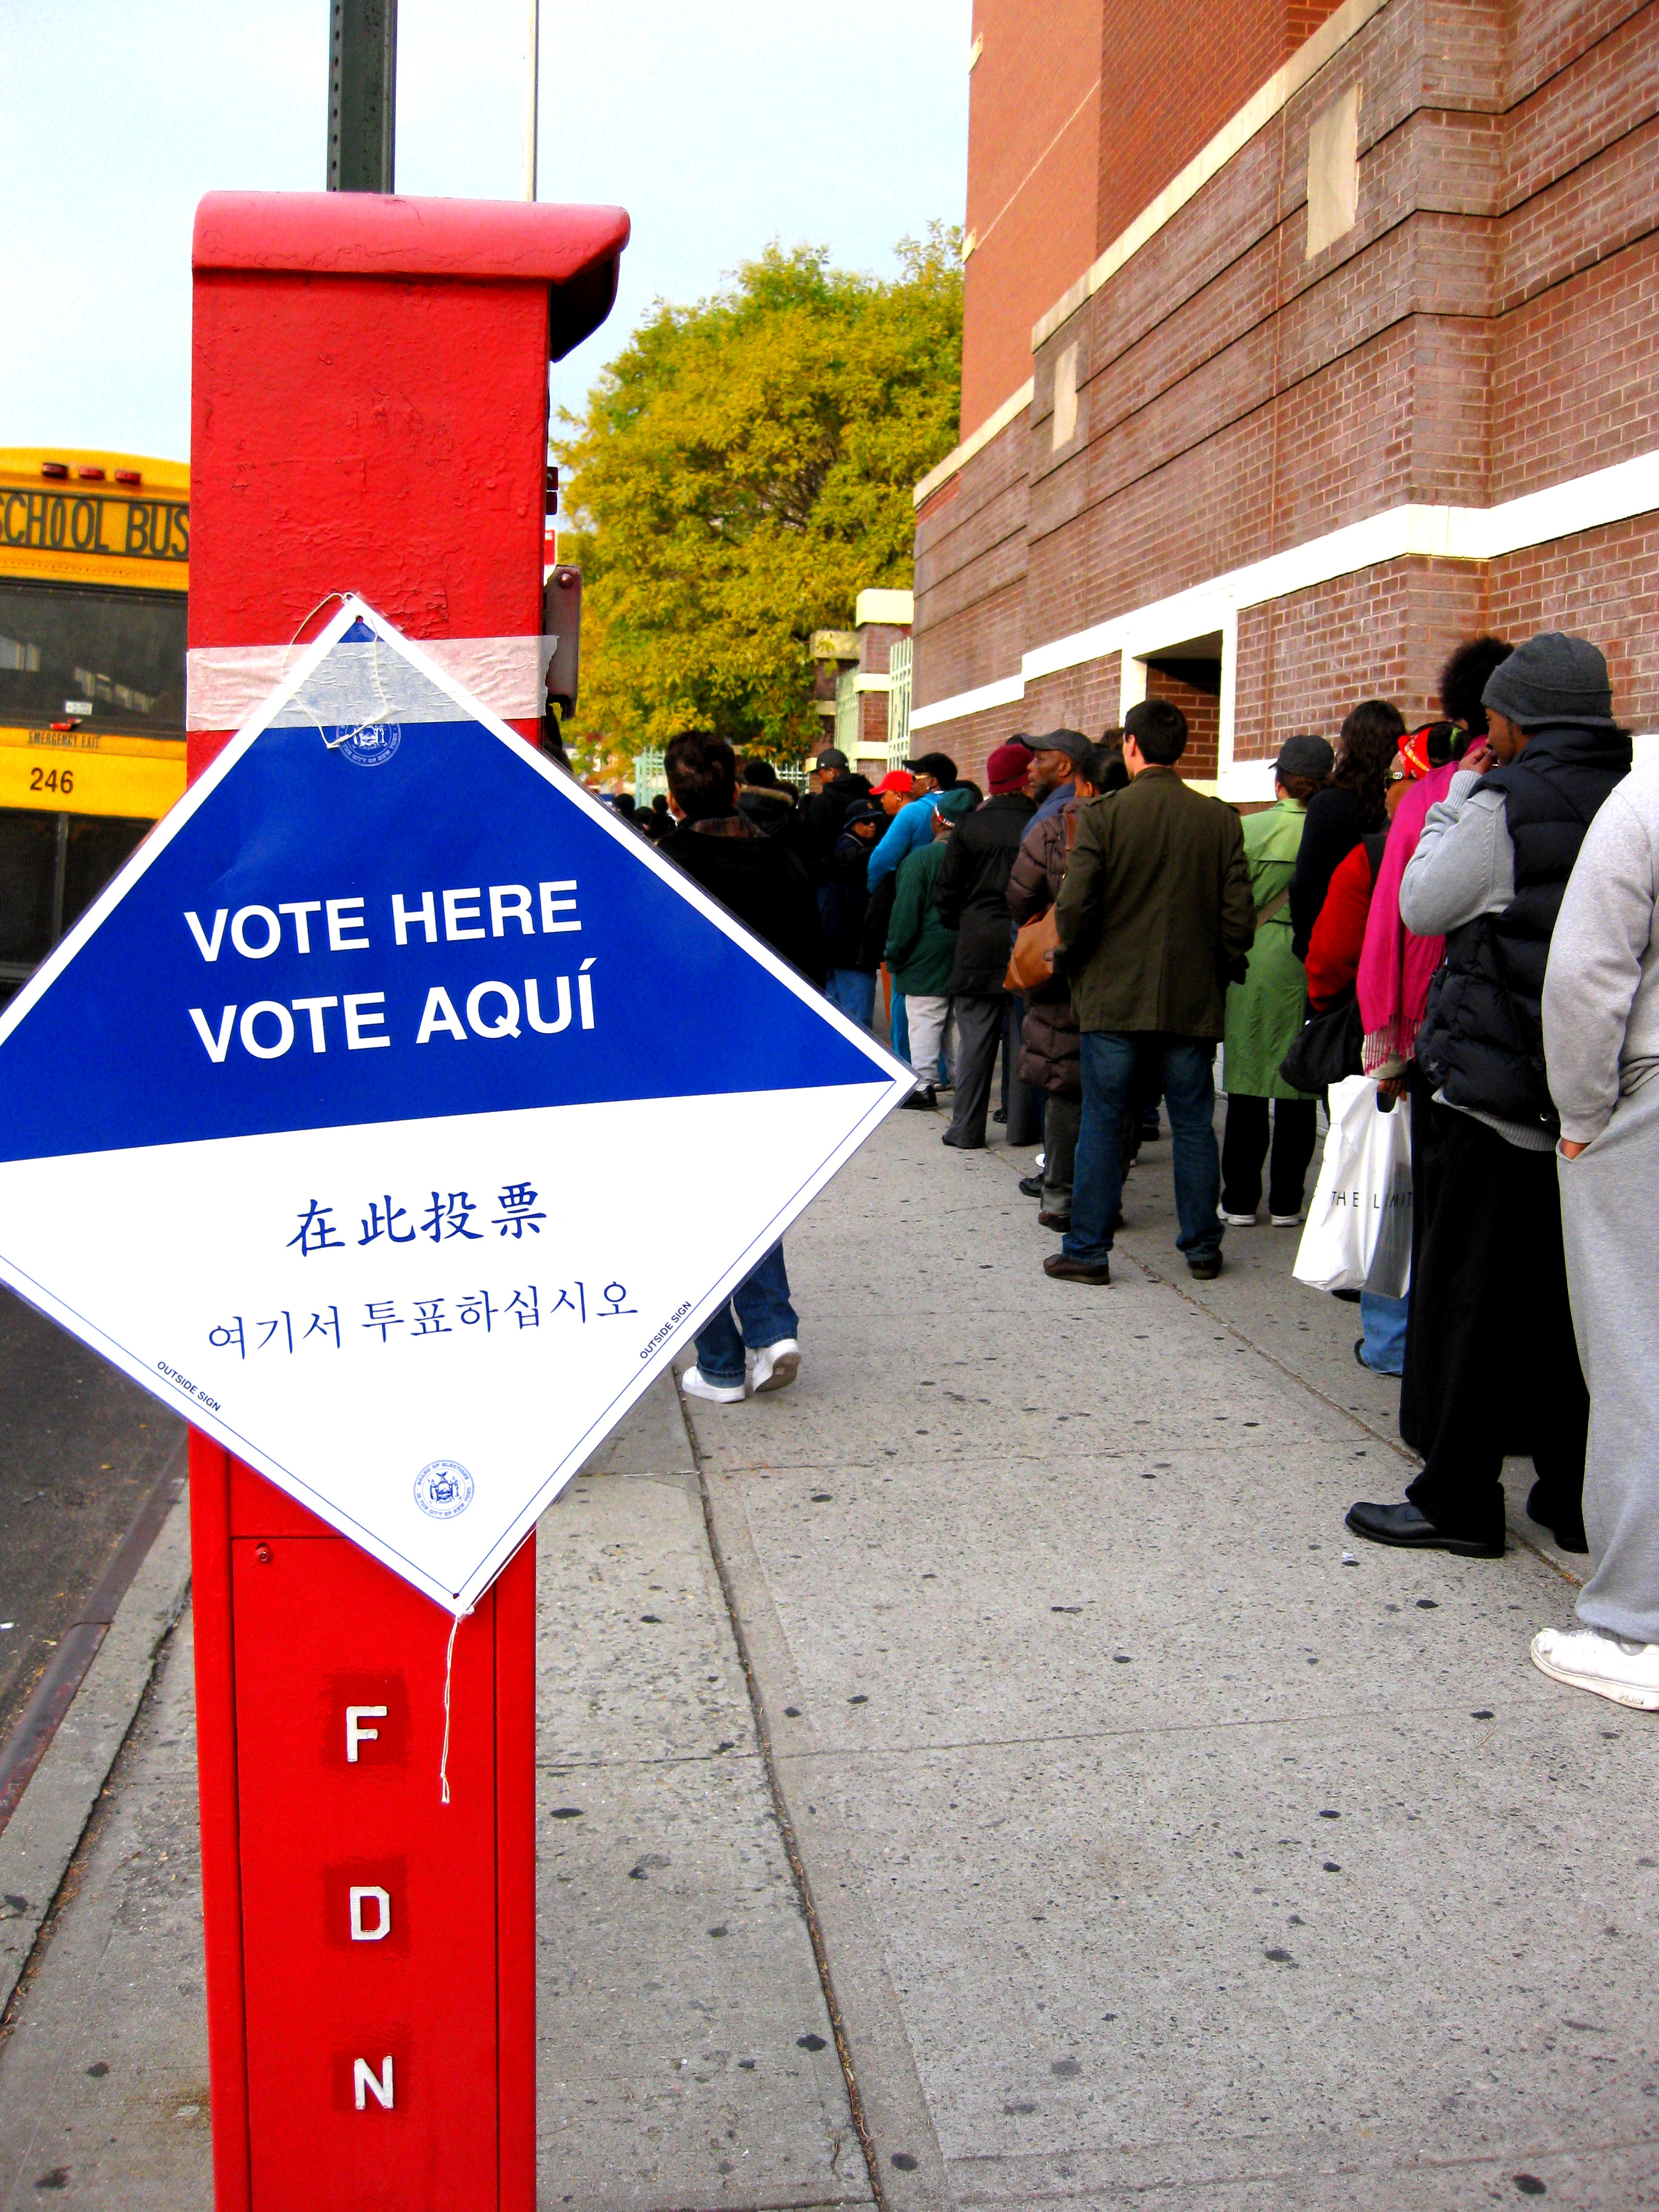 Voters lining up in Brooklyn 2008